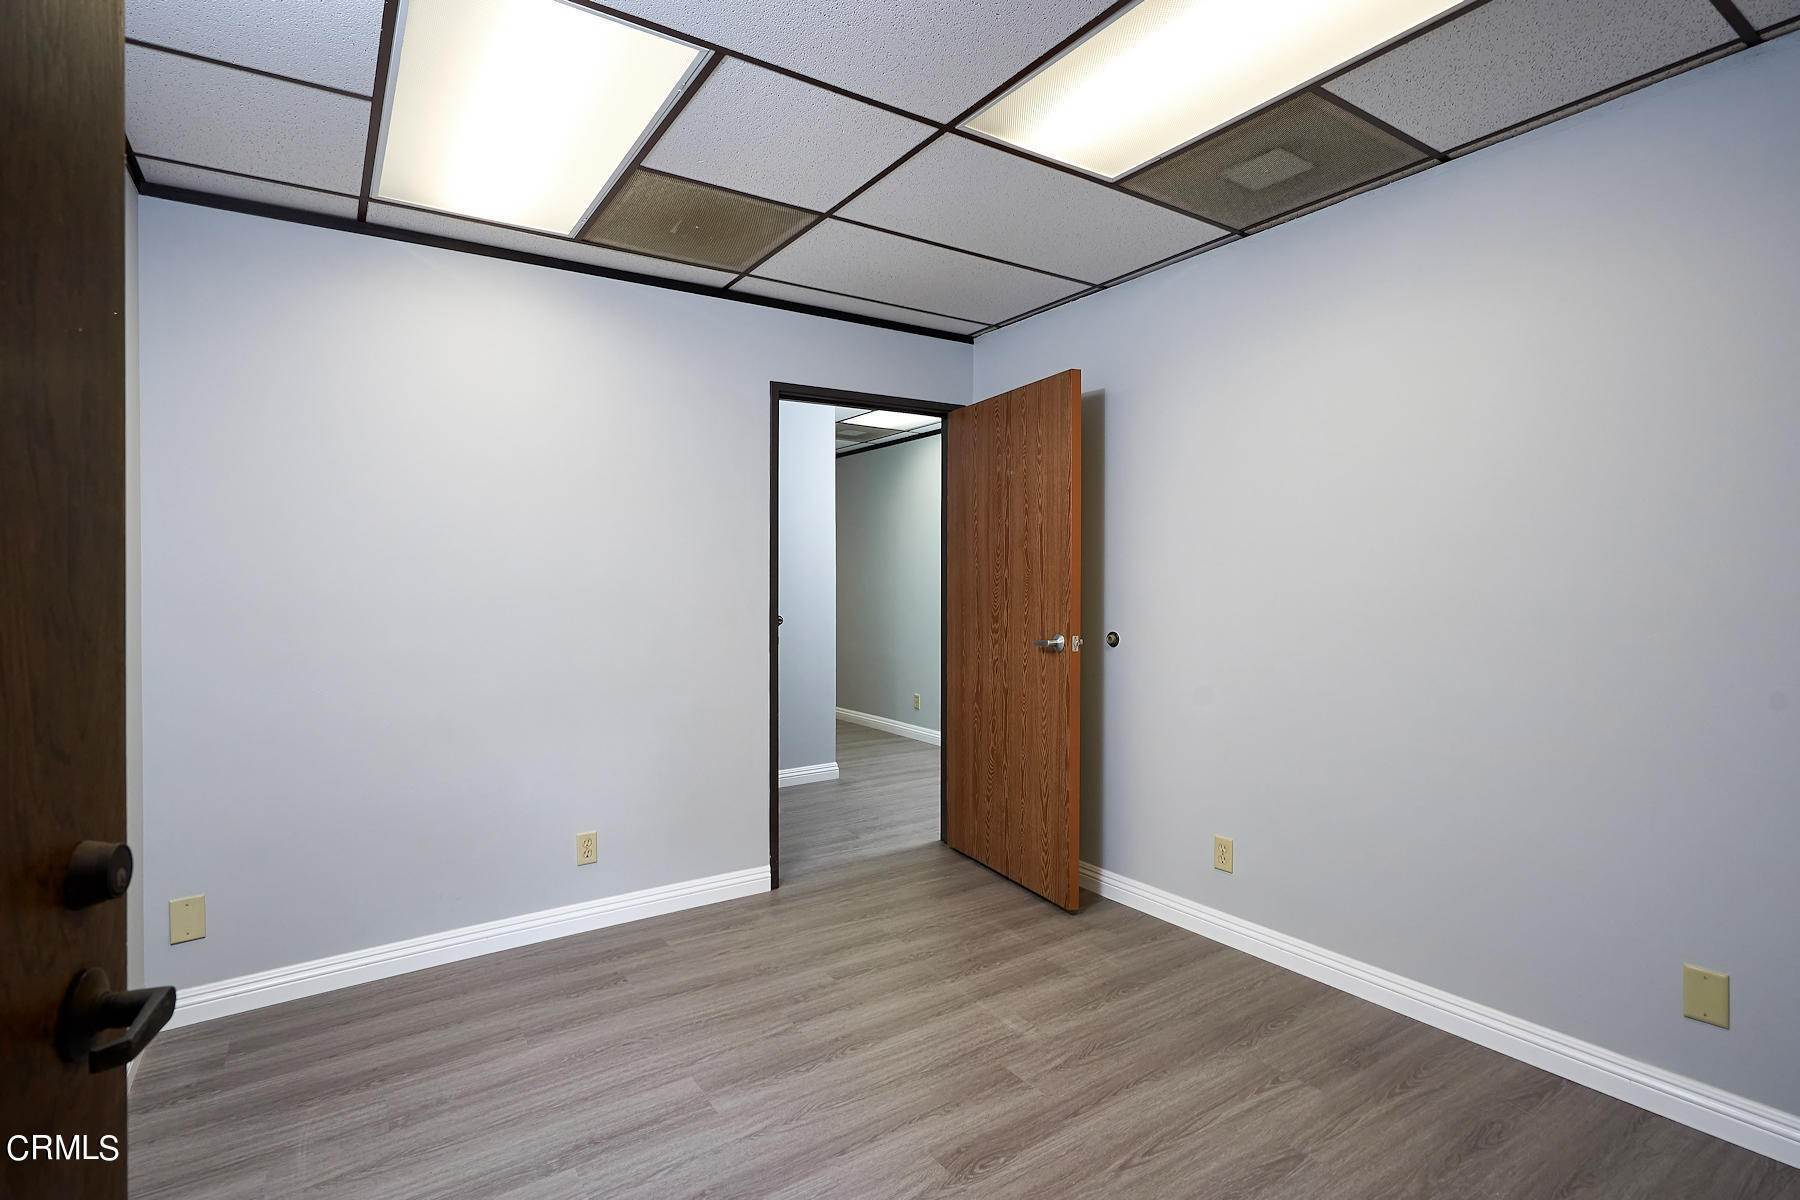 18. Offices for Sale at 921 West 7th Street Oxnard, California 93030 United States